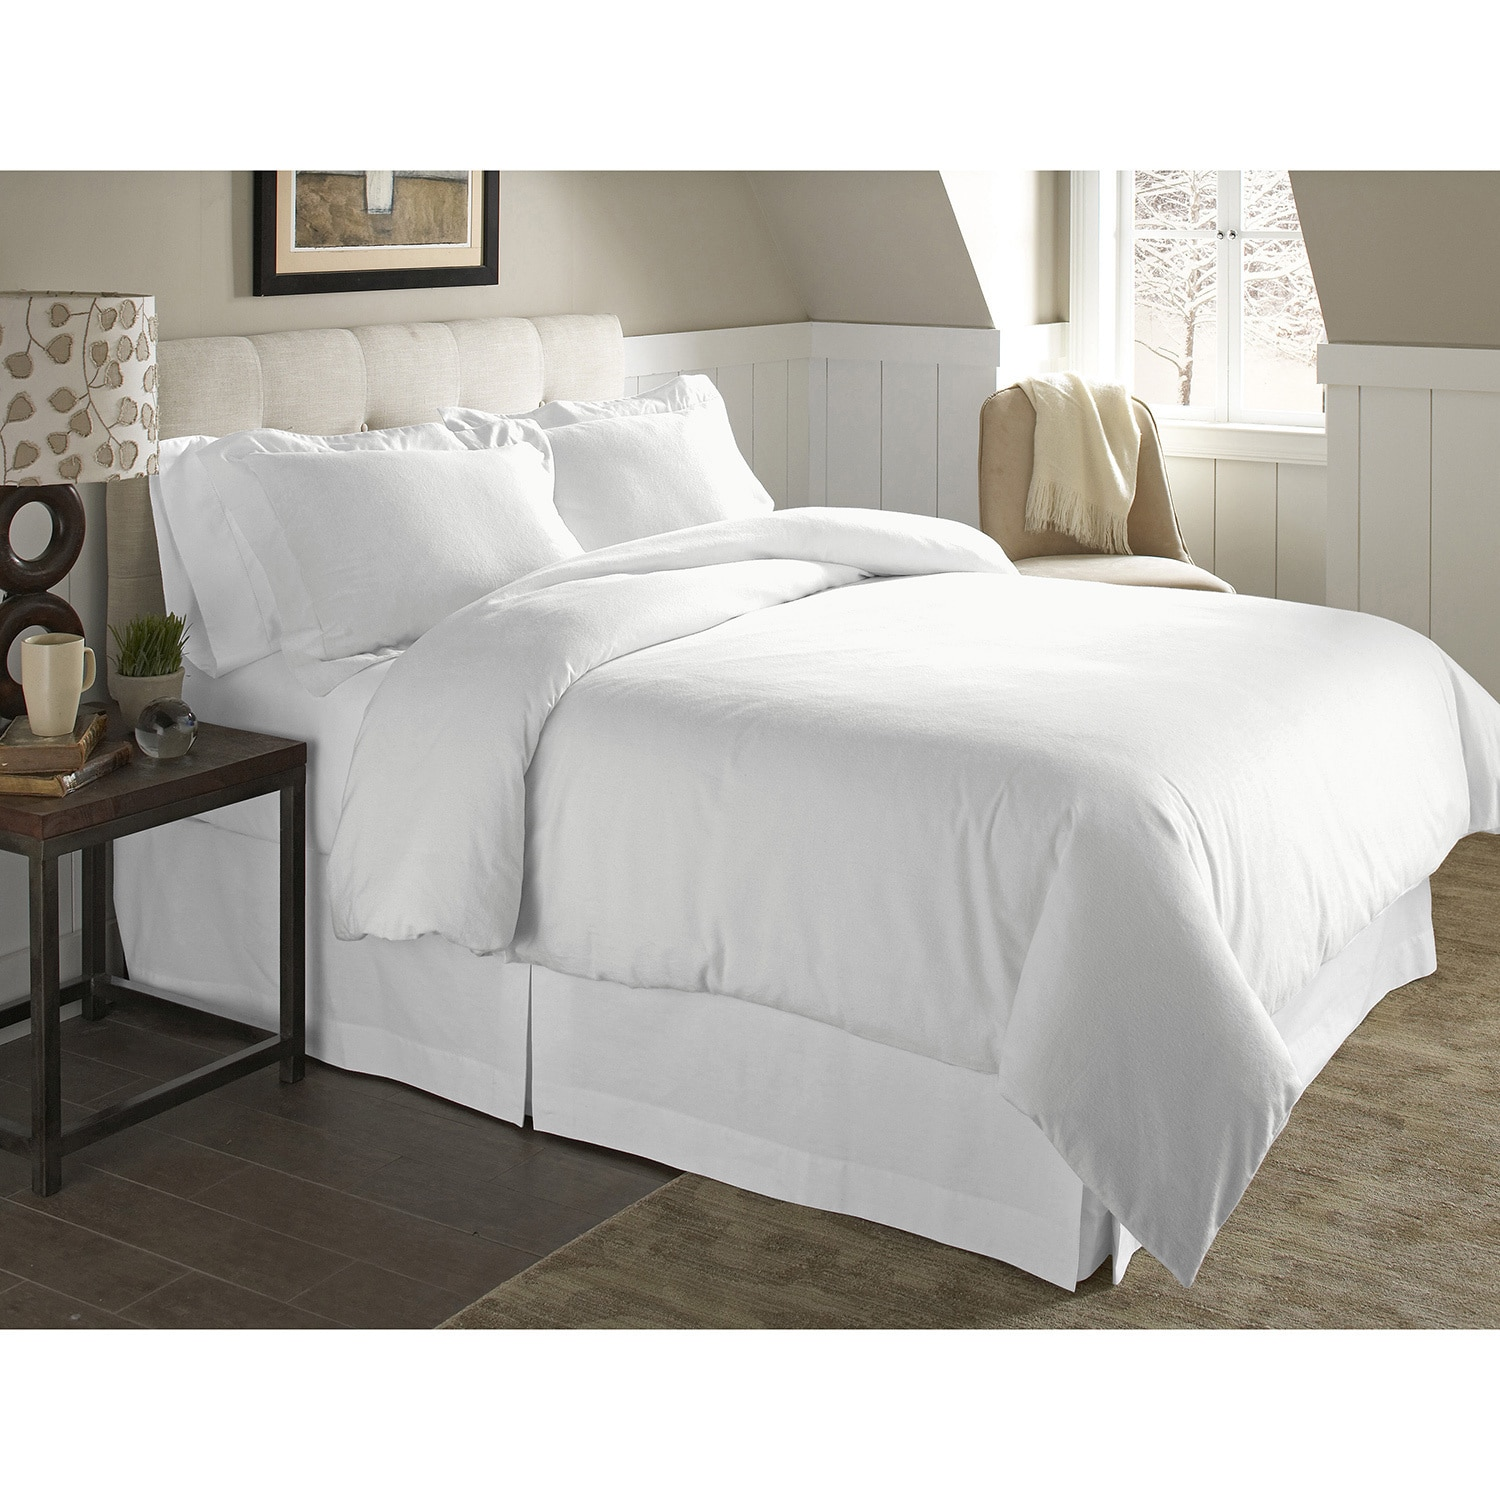 Pointehaven 200 GSM Superior Flannel Solid color Duvet Set